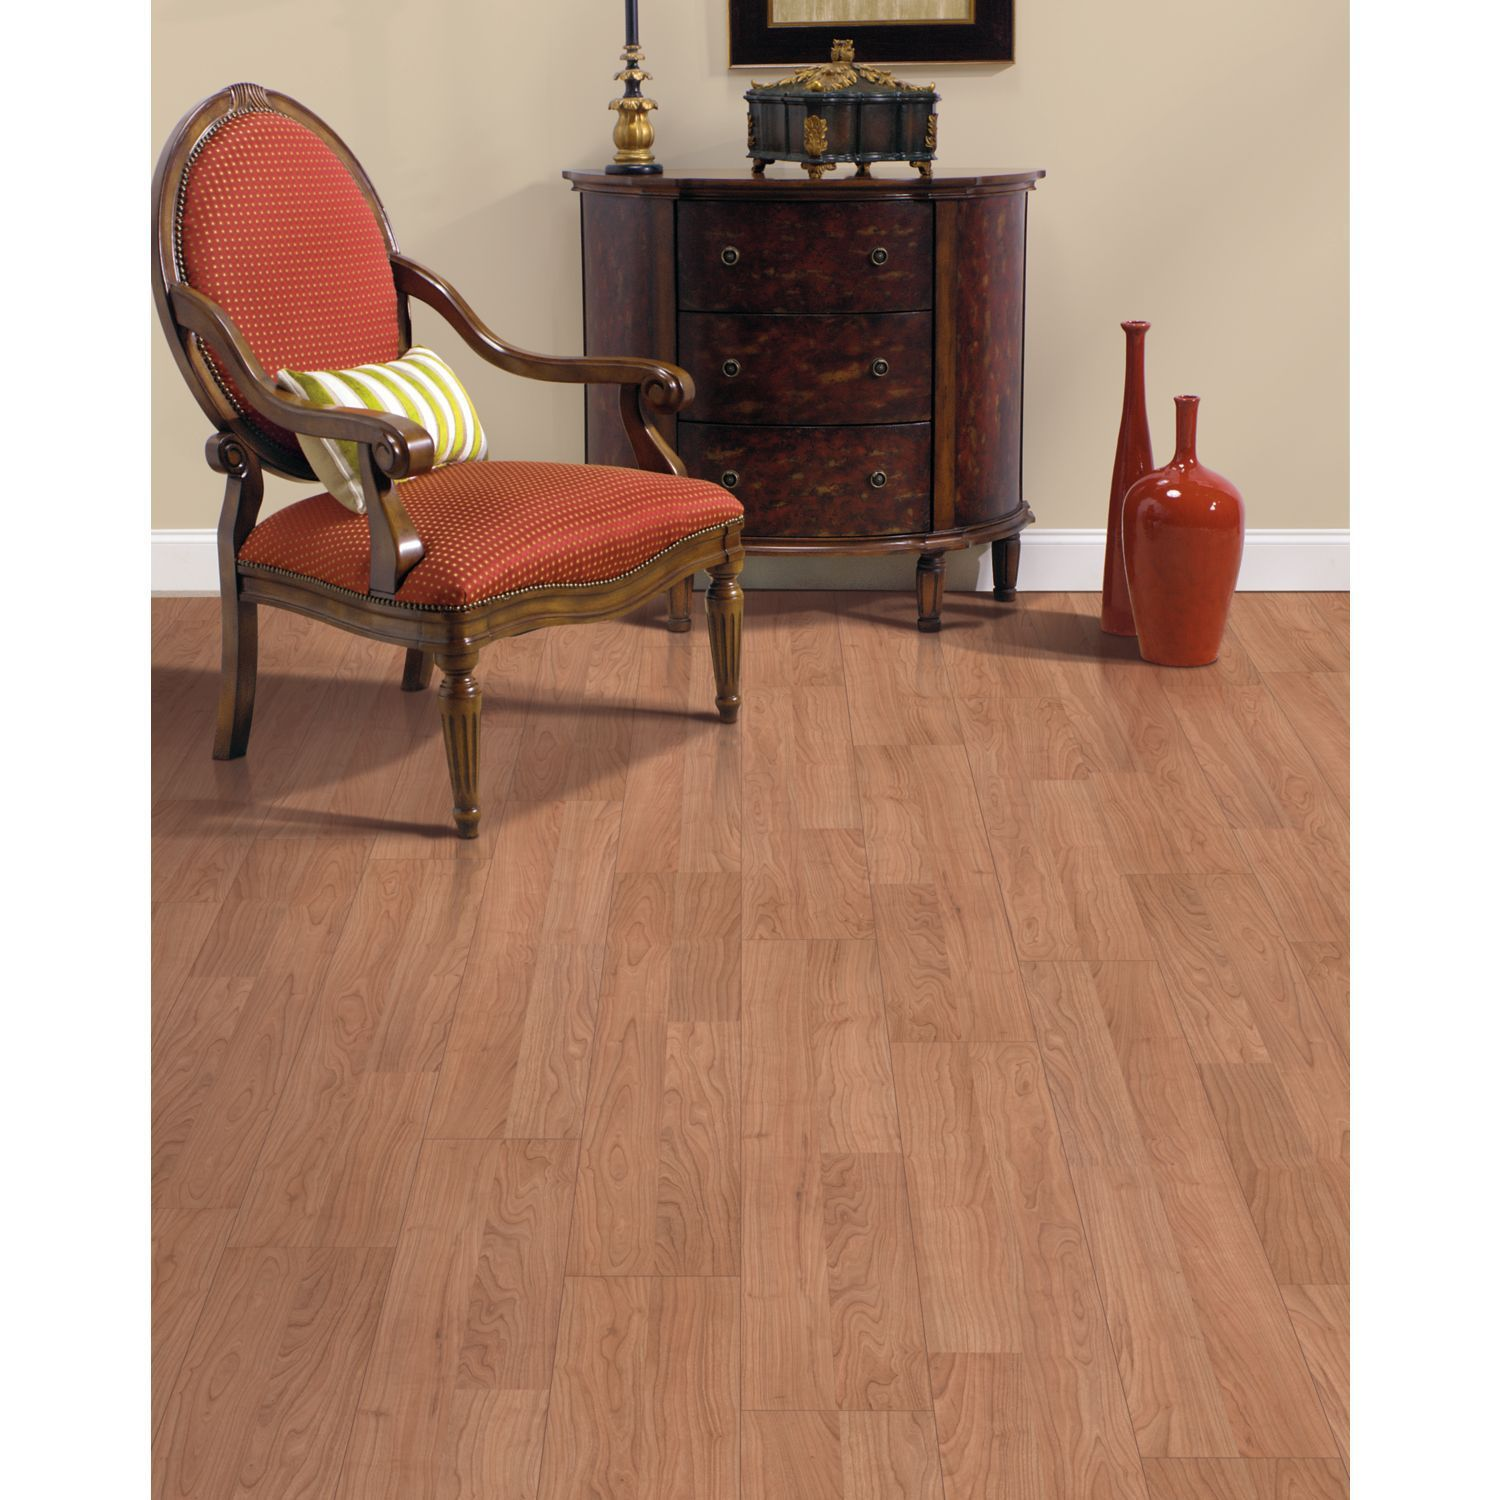 Save Big On Laminate Flooring At Sam S Club A Variety Of Styles And Colors In Stock From Top Brands Including Living Lock N Seal Others